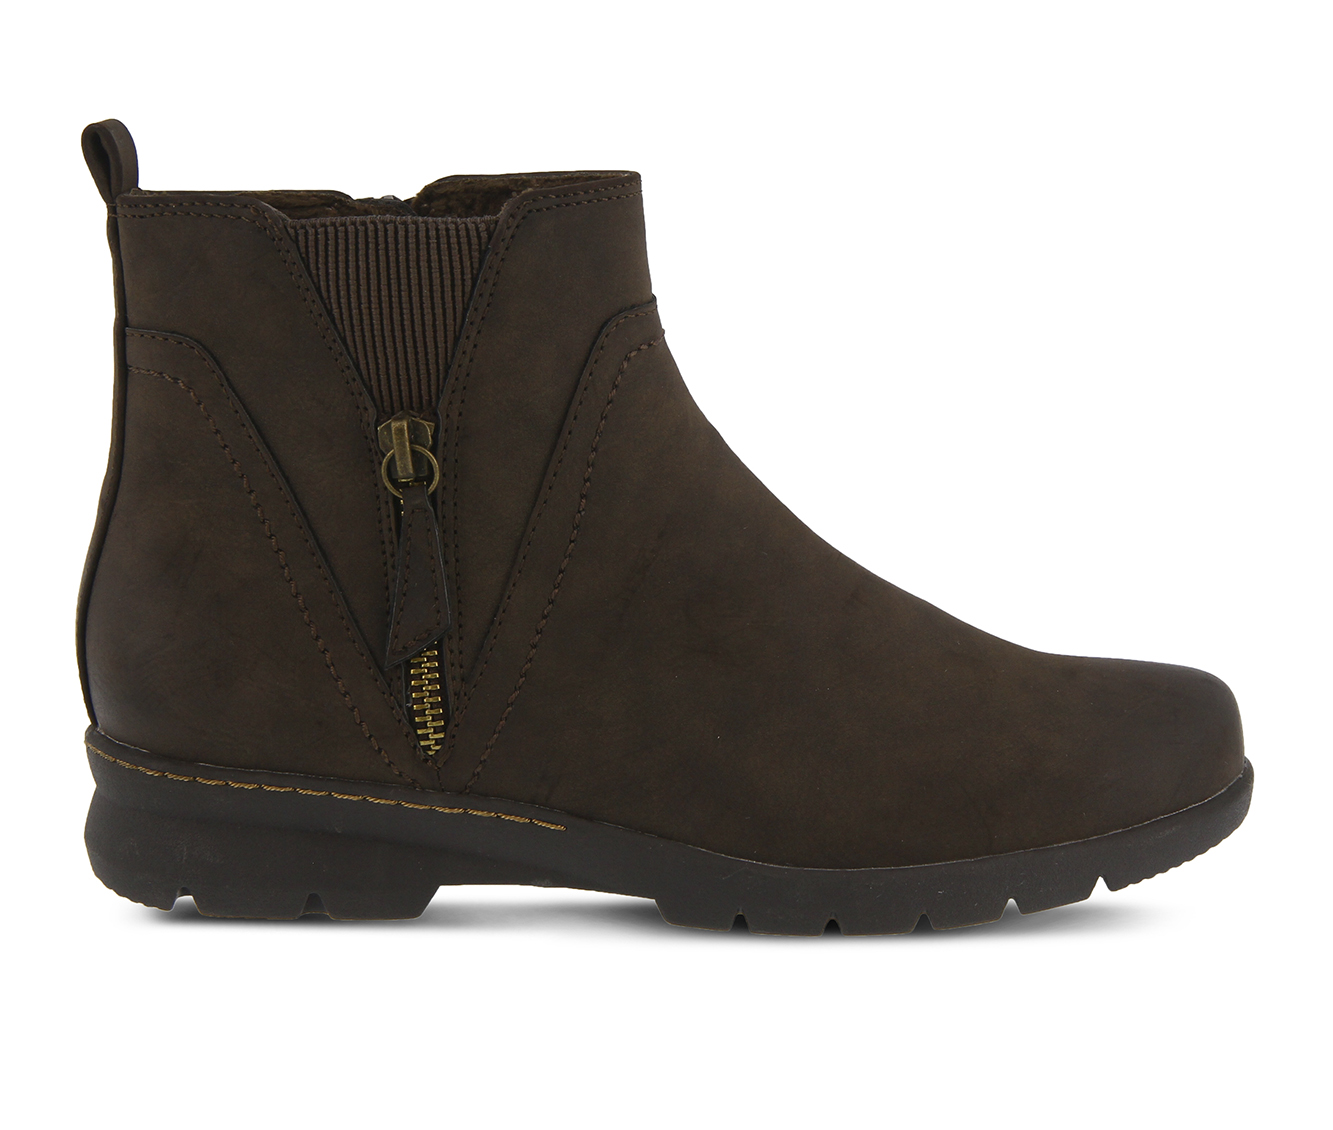 SPRING STEP Yili Women's Boots (Brown Faux Leather)